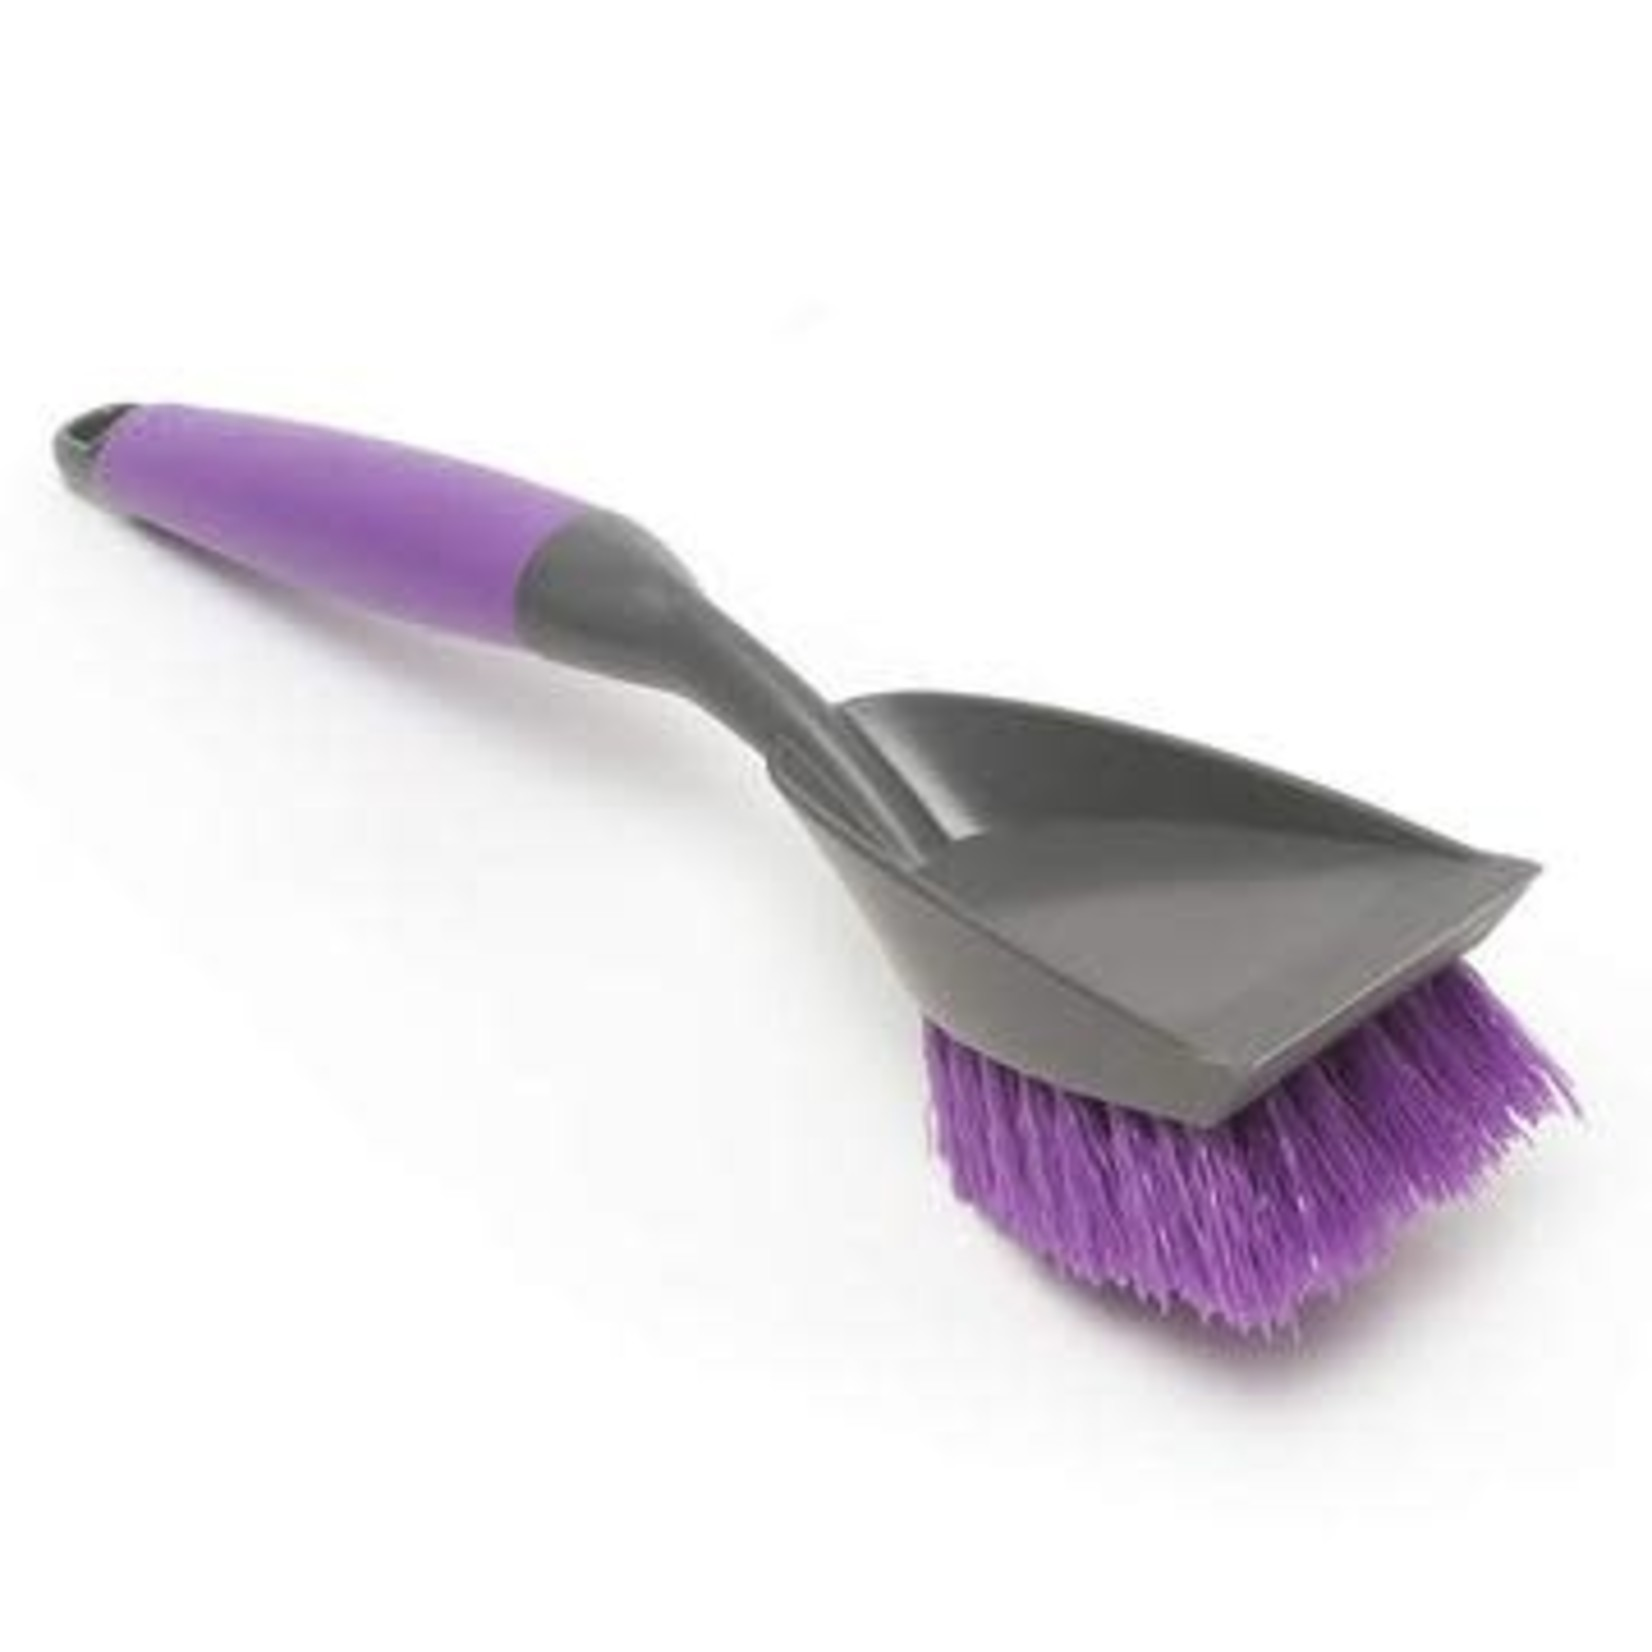 Messy Mutts Messy Mutts Cat Litter Cleaning Brush Purple